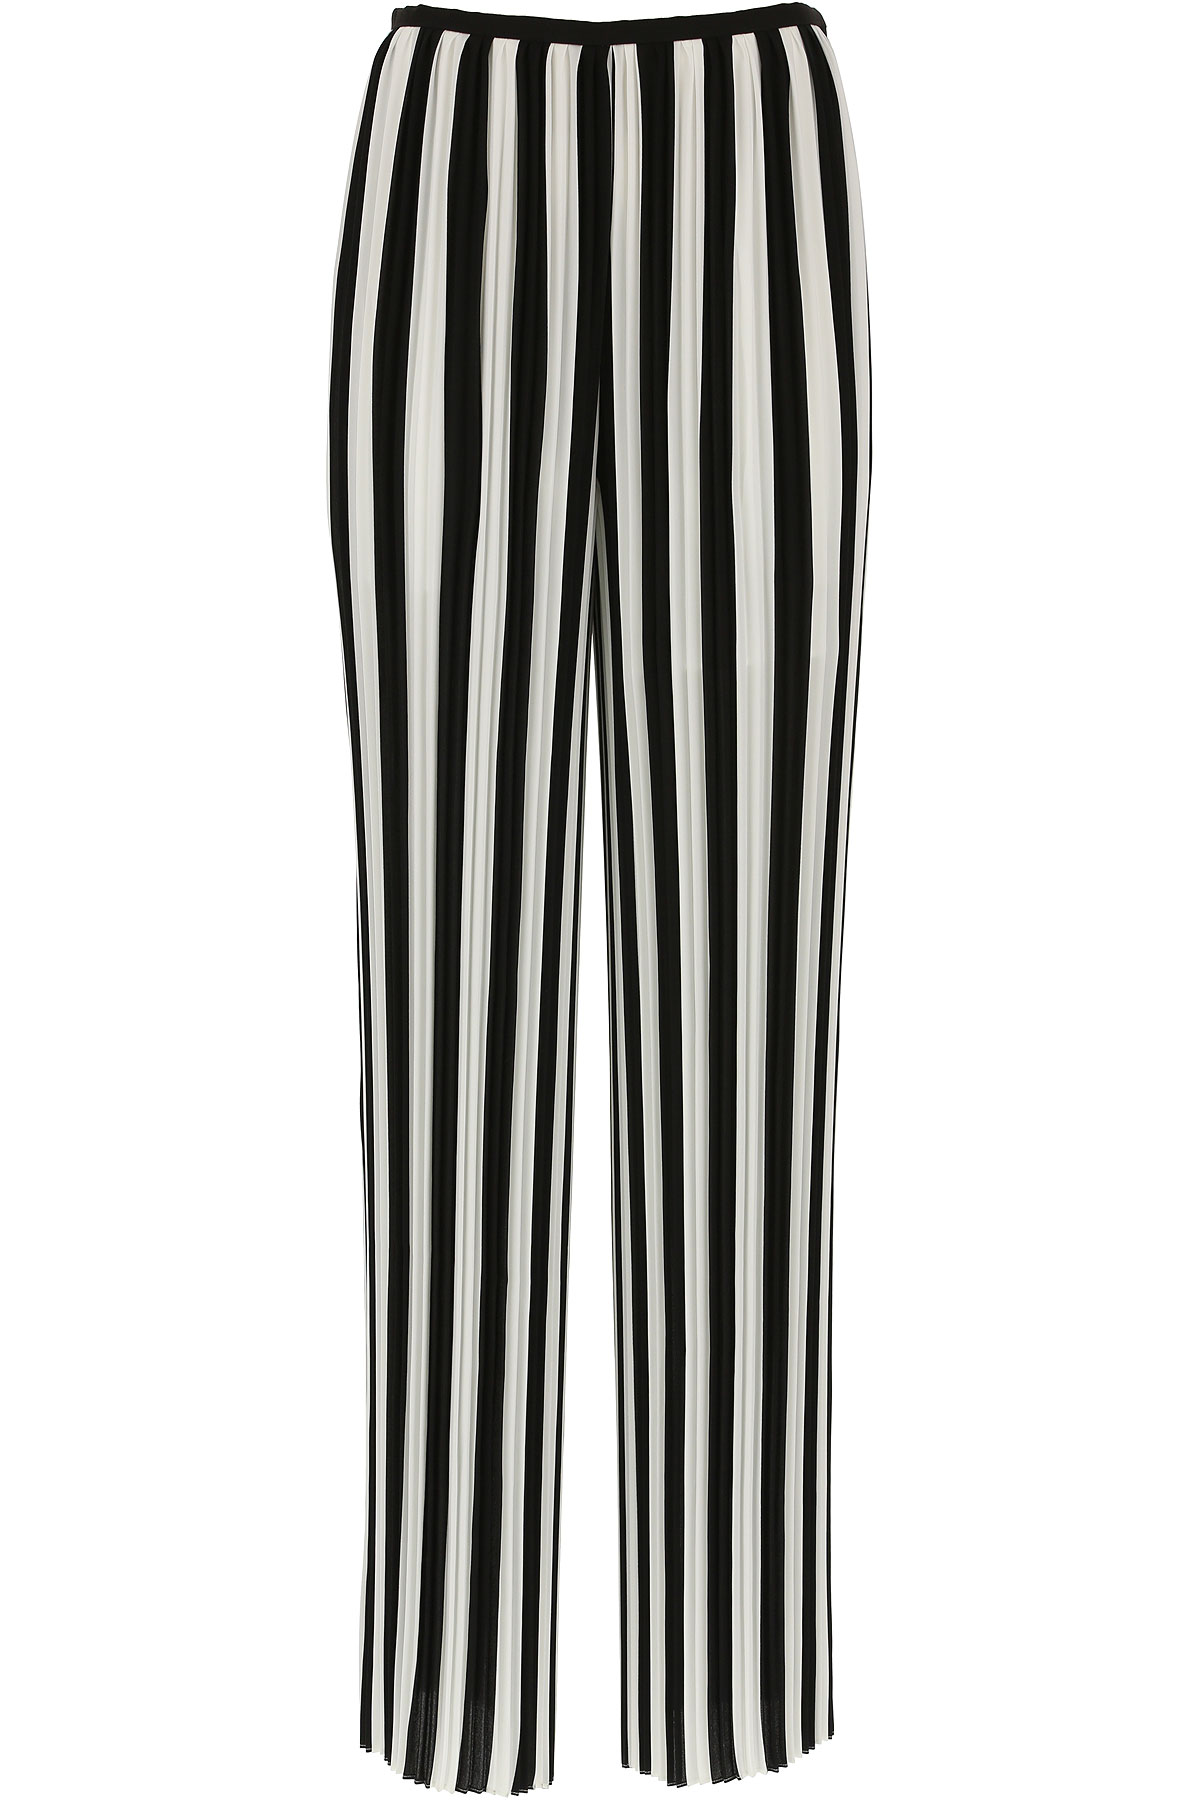 Image of Krizia Pants for Women, Black, polyester, 2017, 10 4 6 8